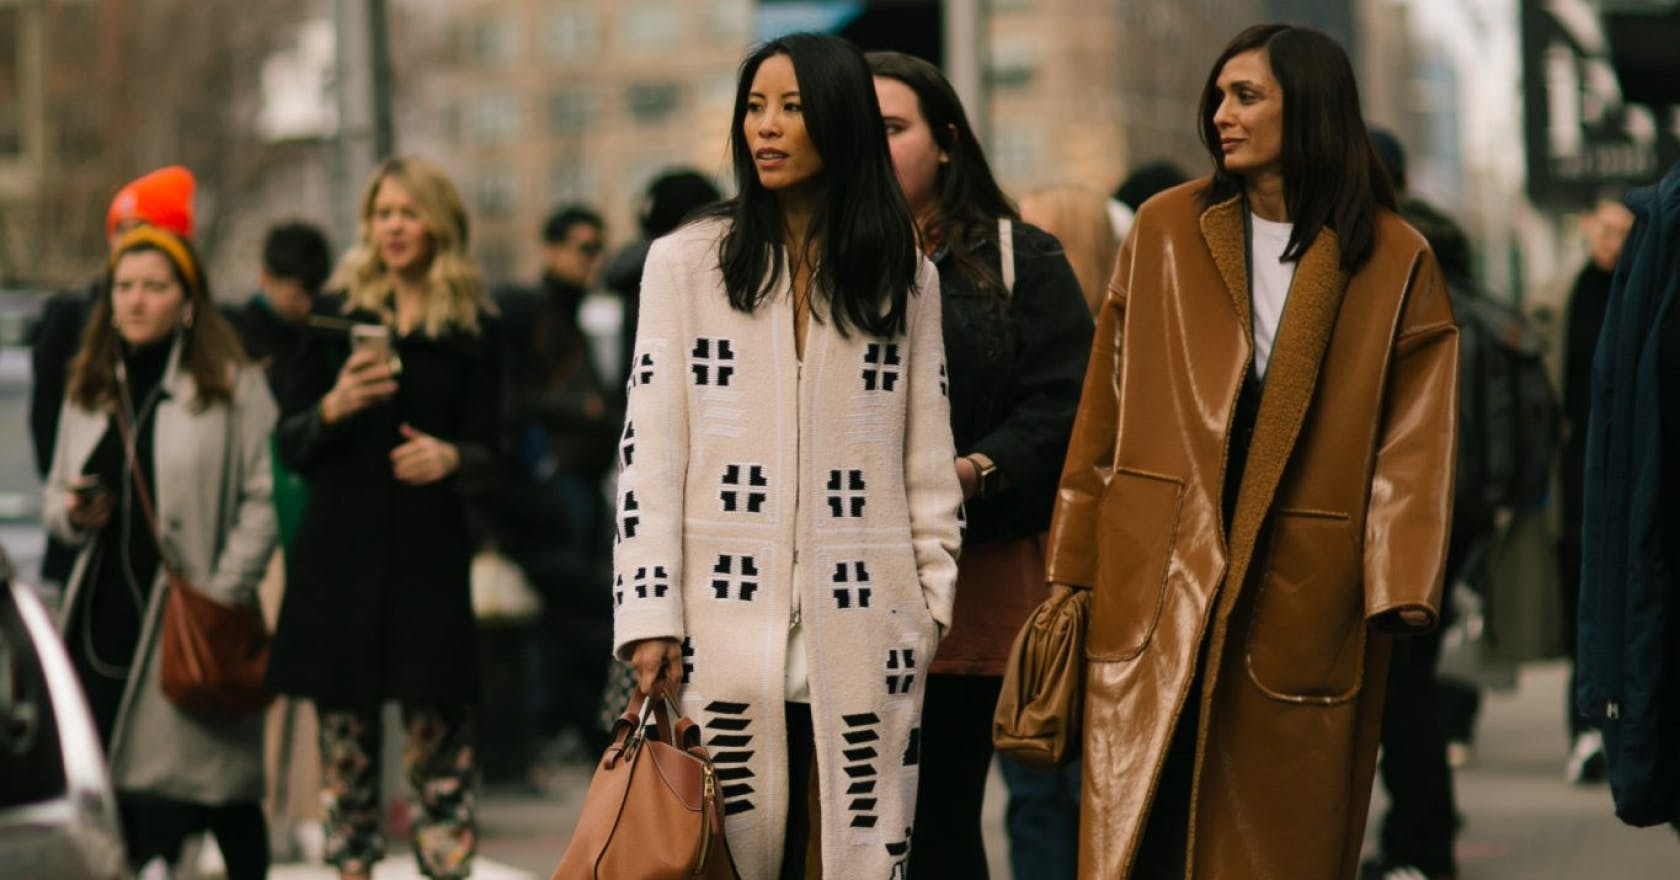 NYFW street style: the stand-out looks from New York Fashion Week